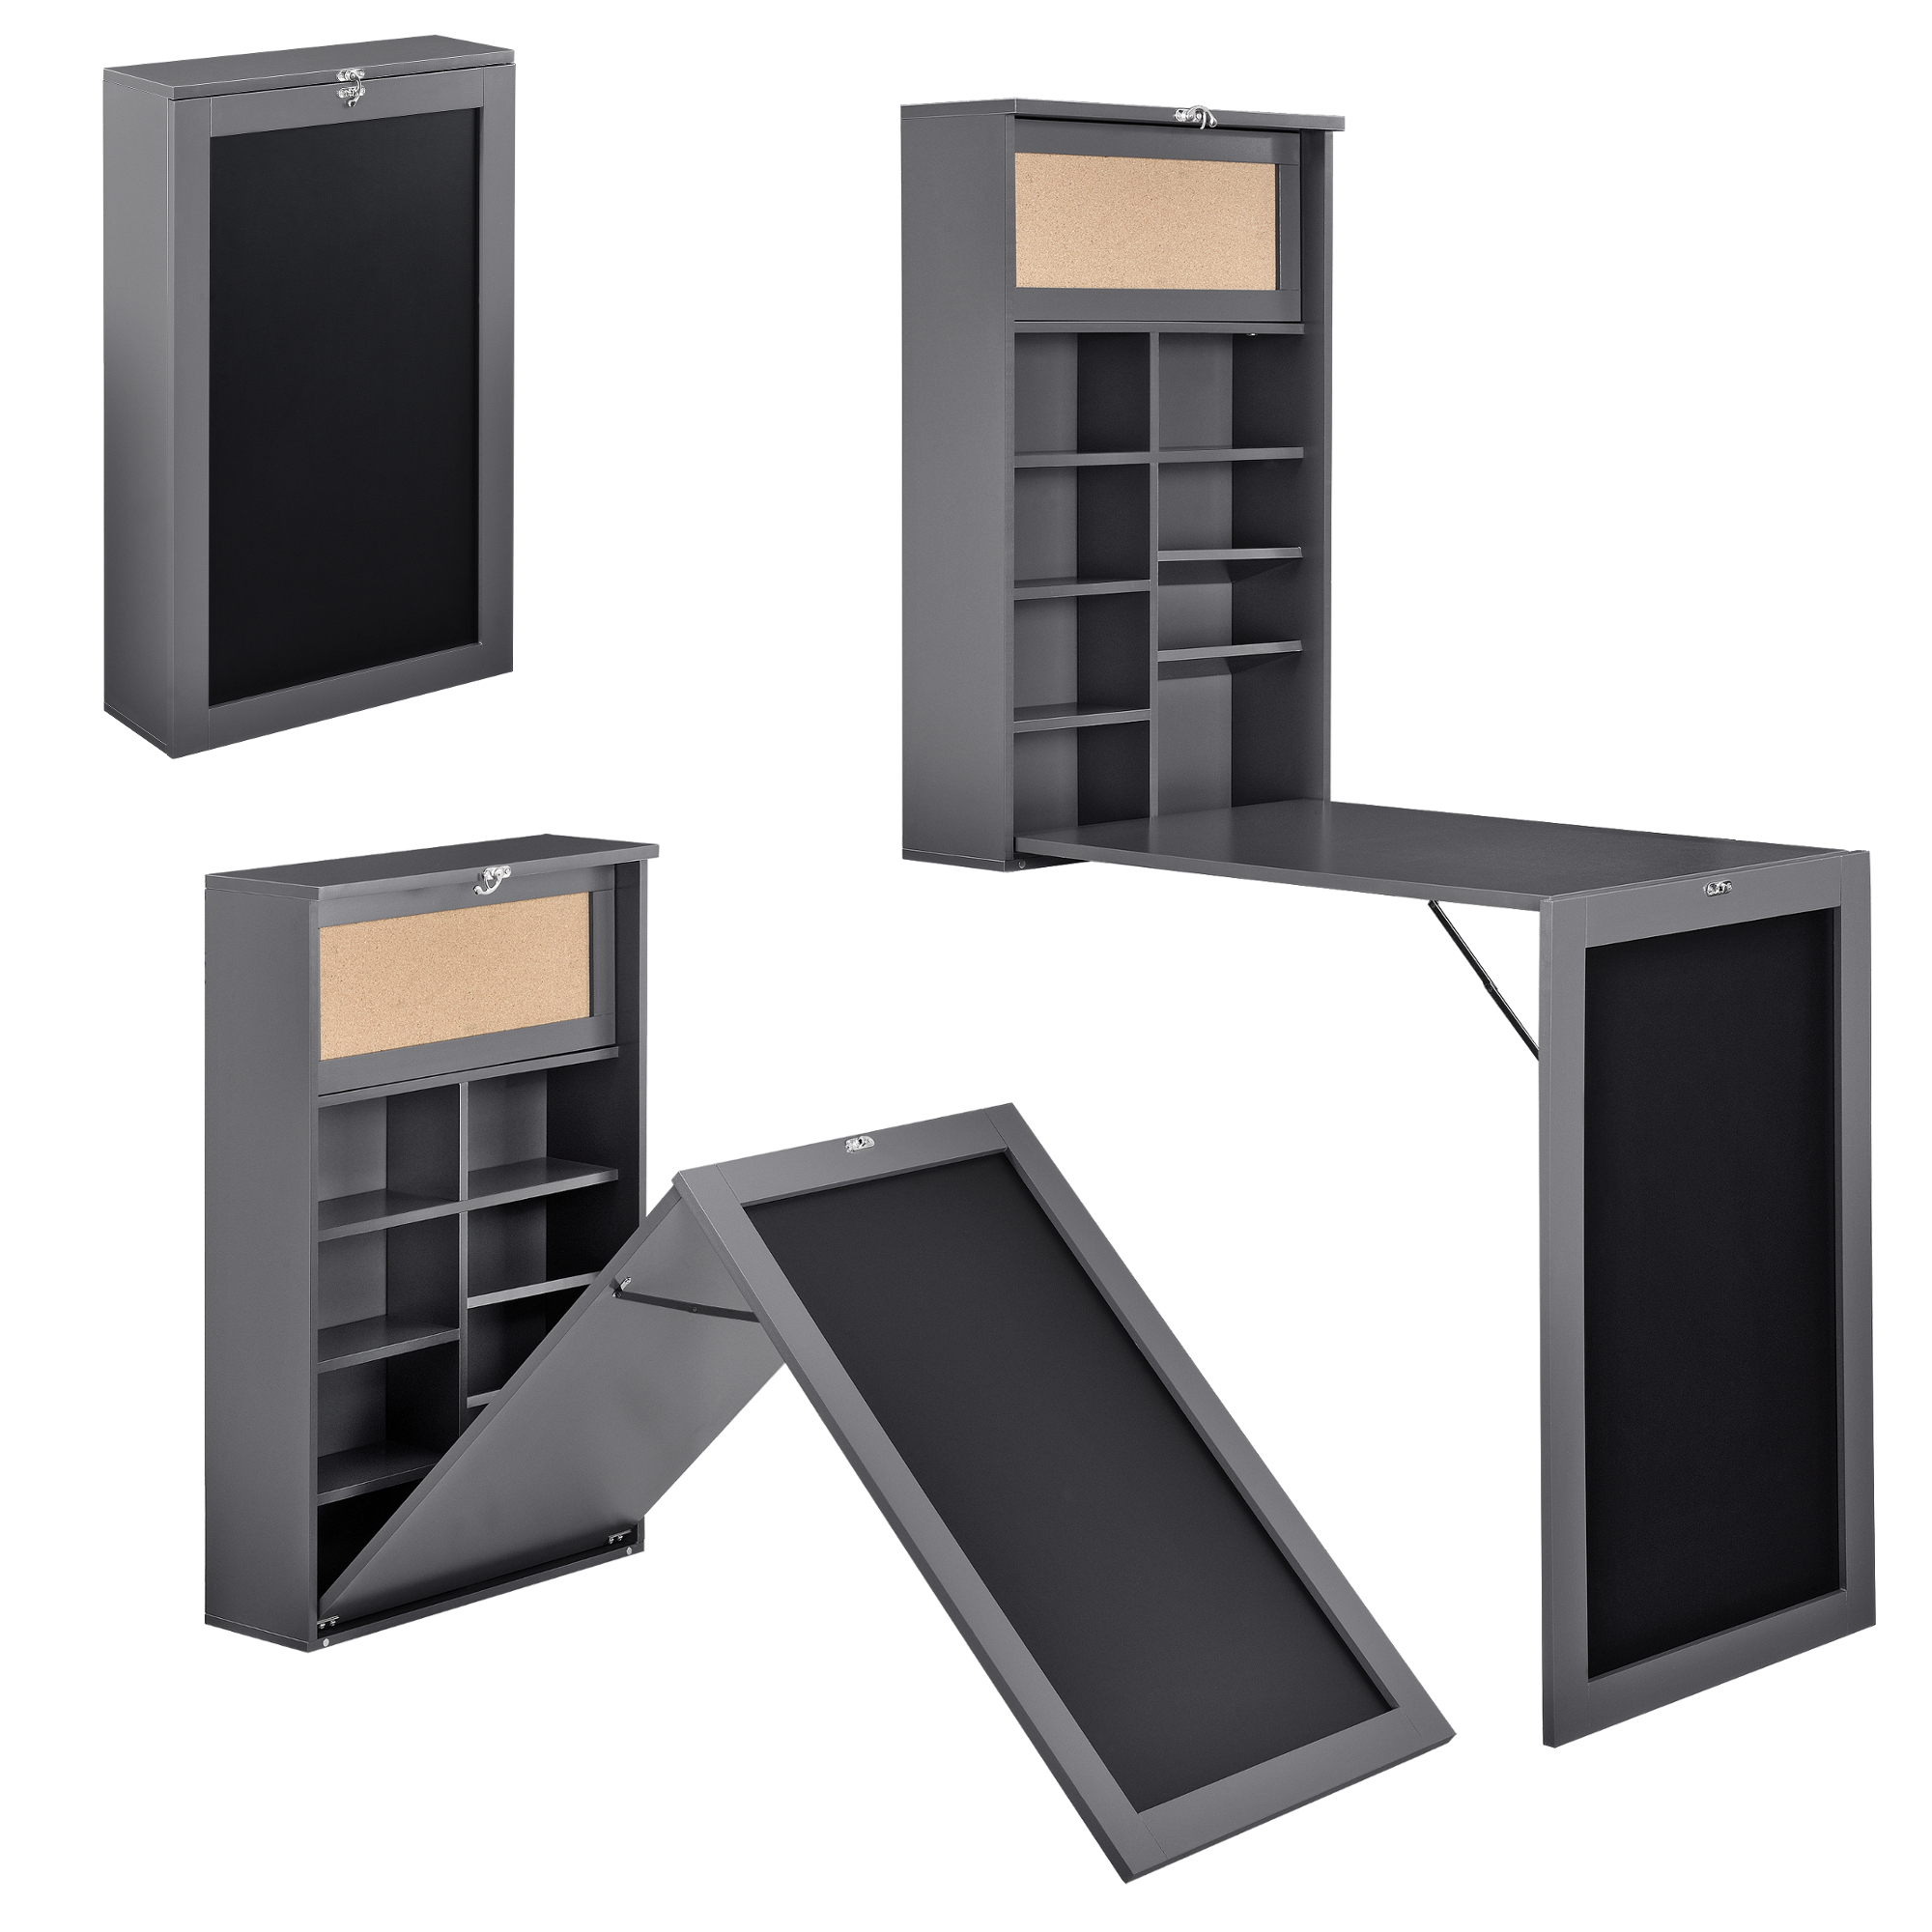 wandtisch schreibtisch tisch regal wand klapptisch aus klappbar tafel ebay. Black Bedroom Furniture Sets. Home Design Ideas